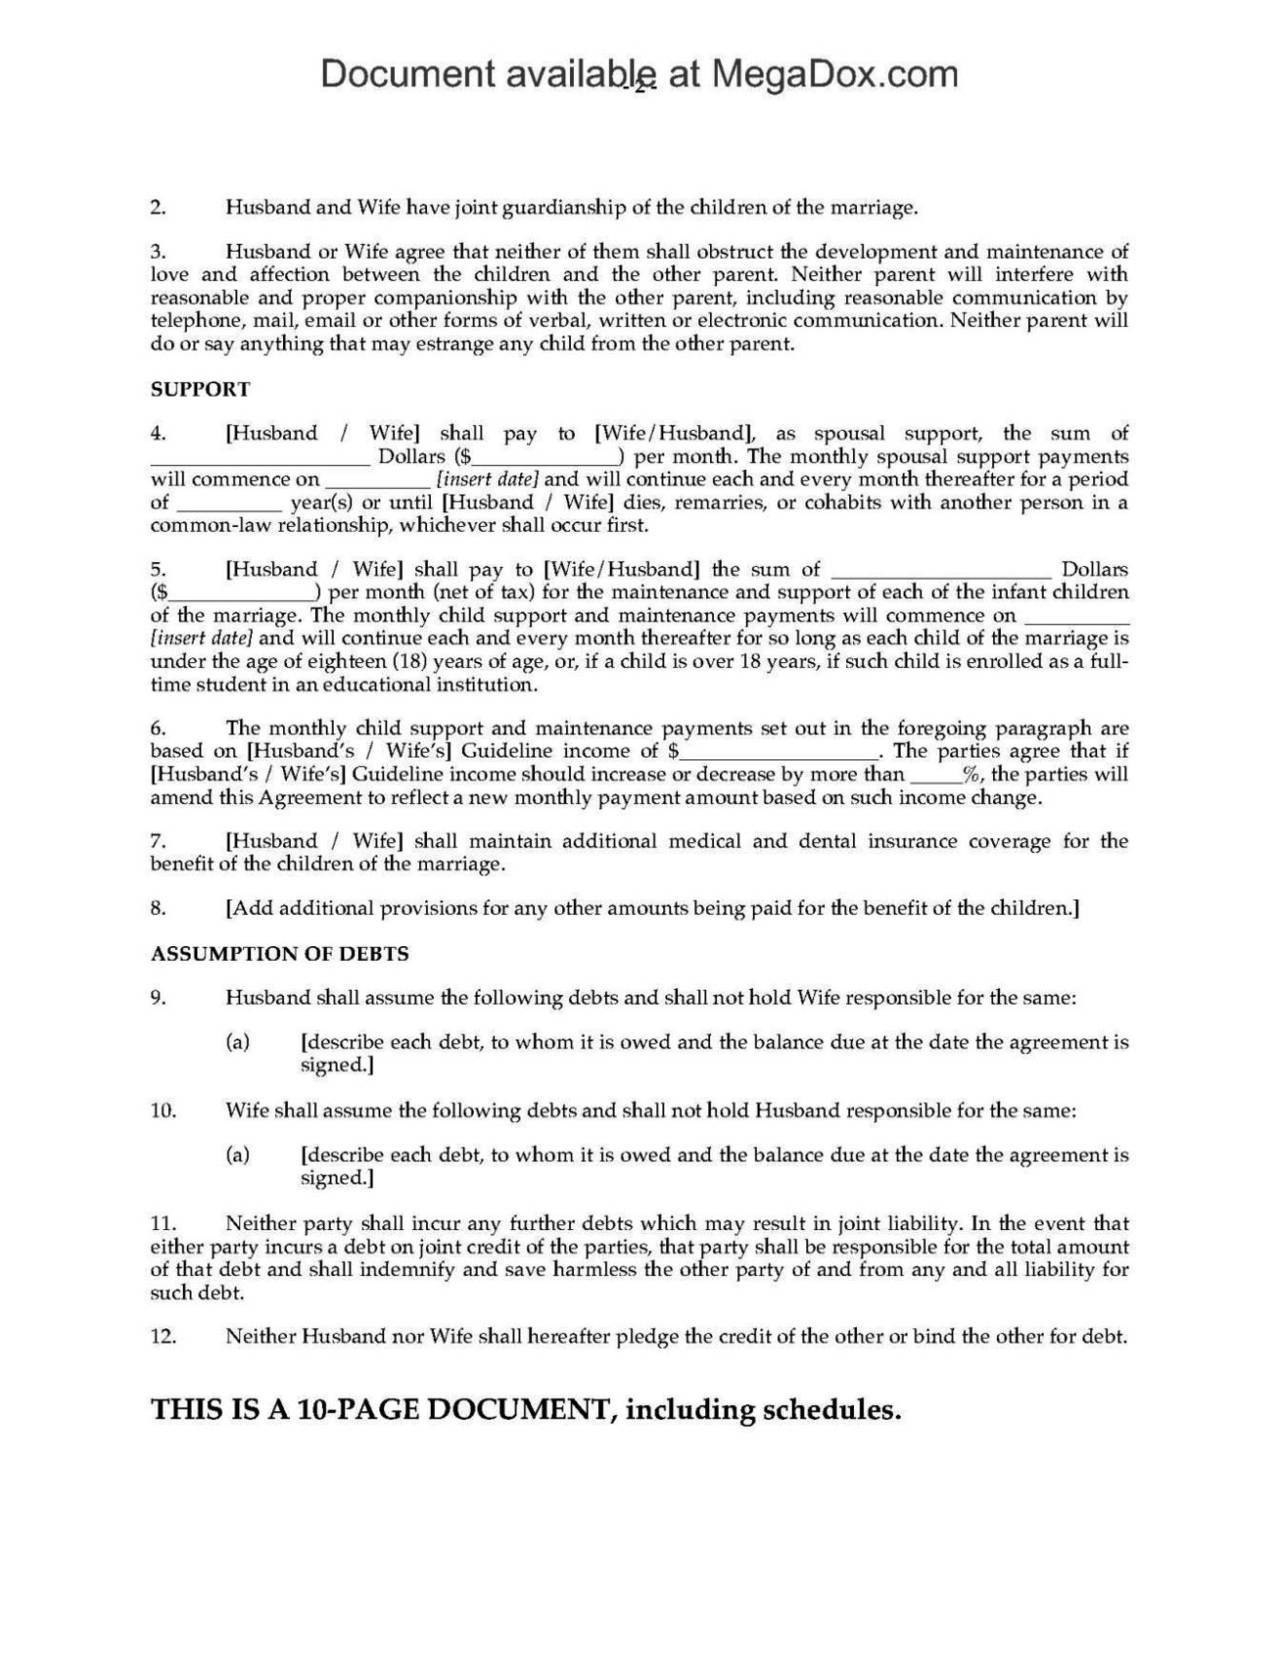 Common Law Separation Agreement Template  Sampletemplatess For Common Law Separation Agreement Template